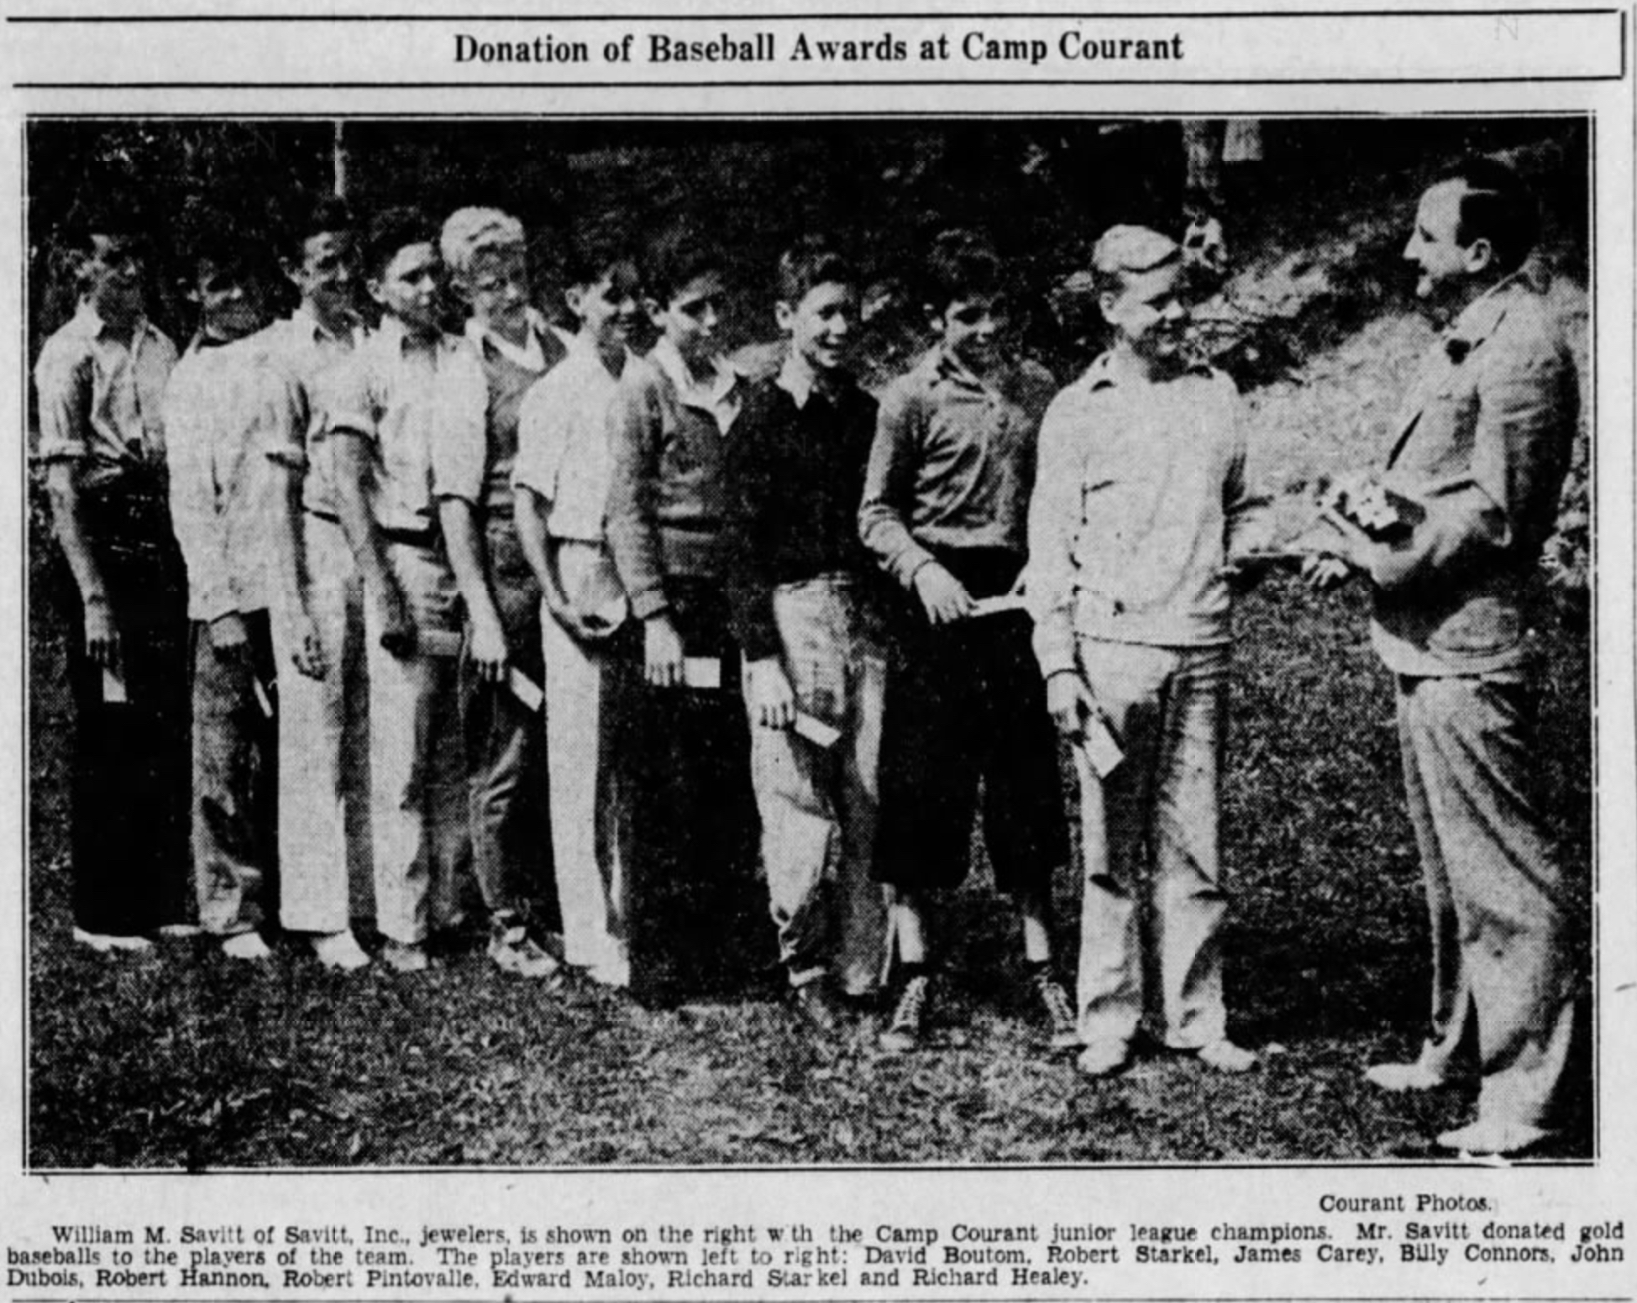 Bill Savitt awards Camp Courant champions, 1934.